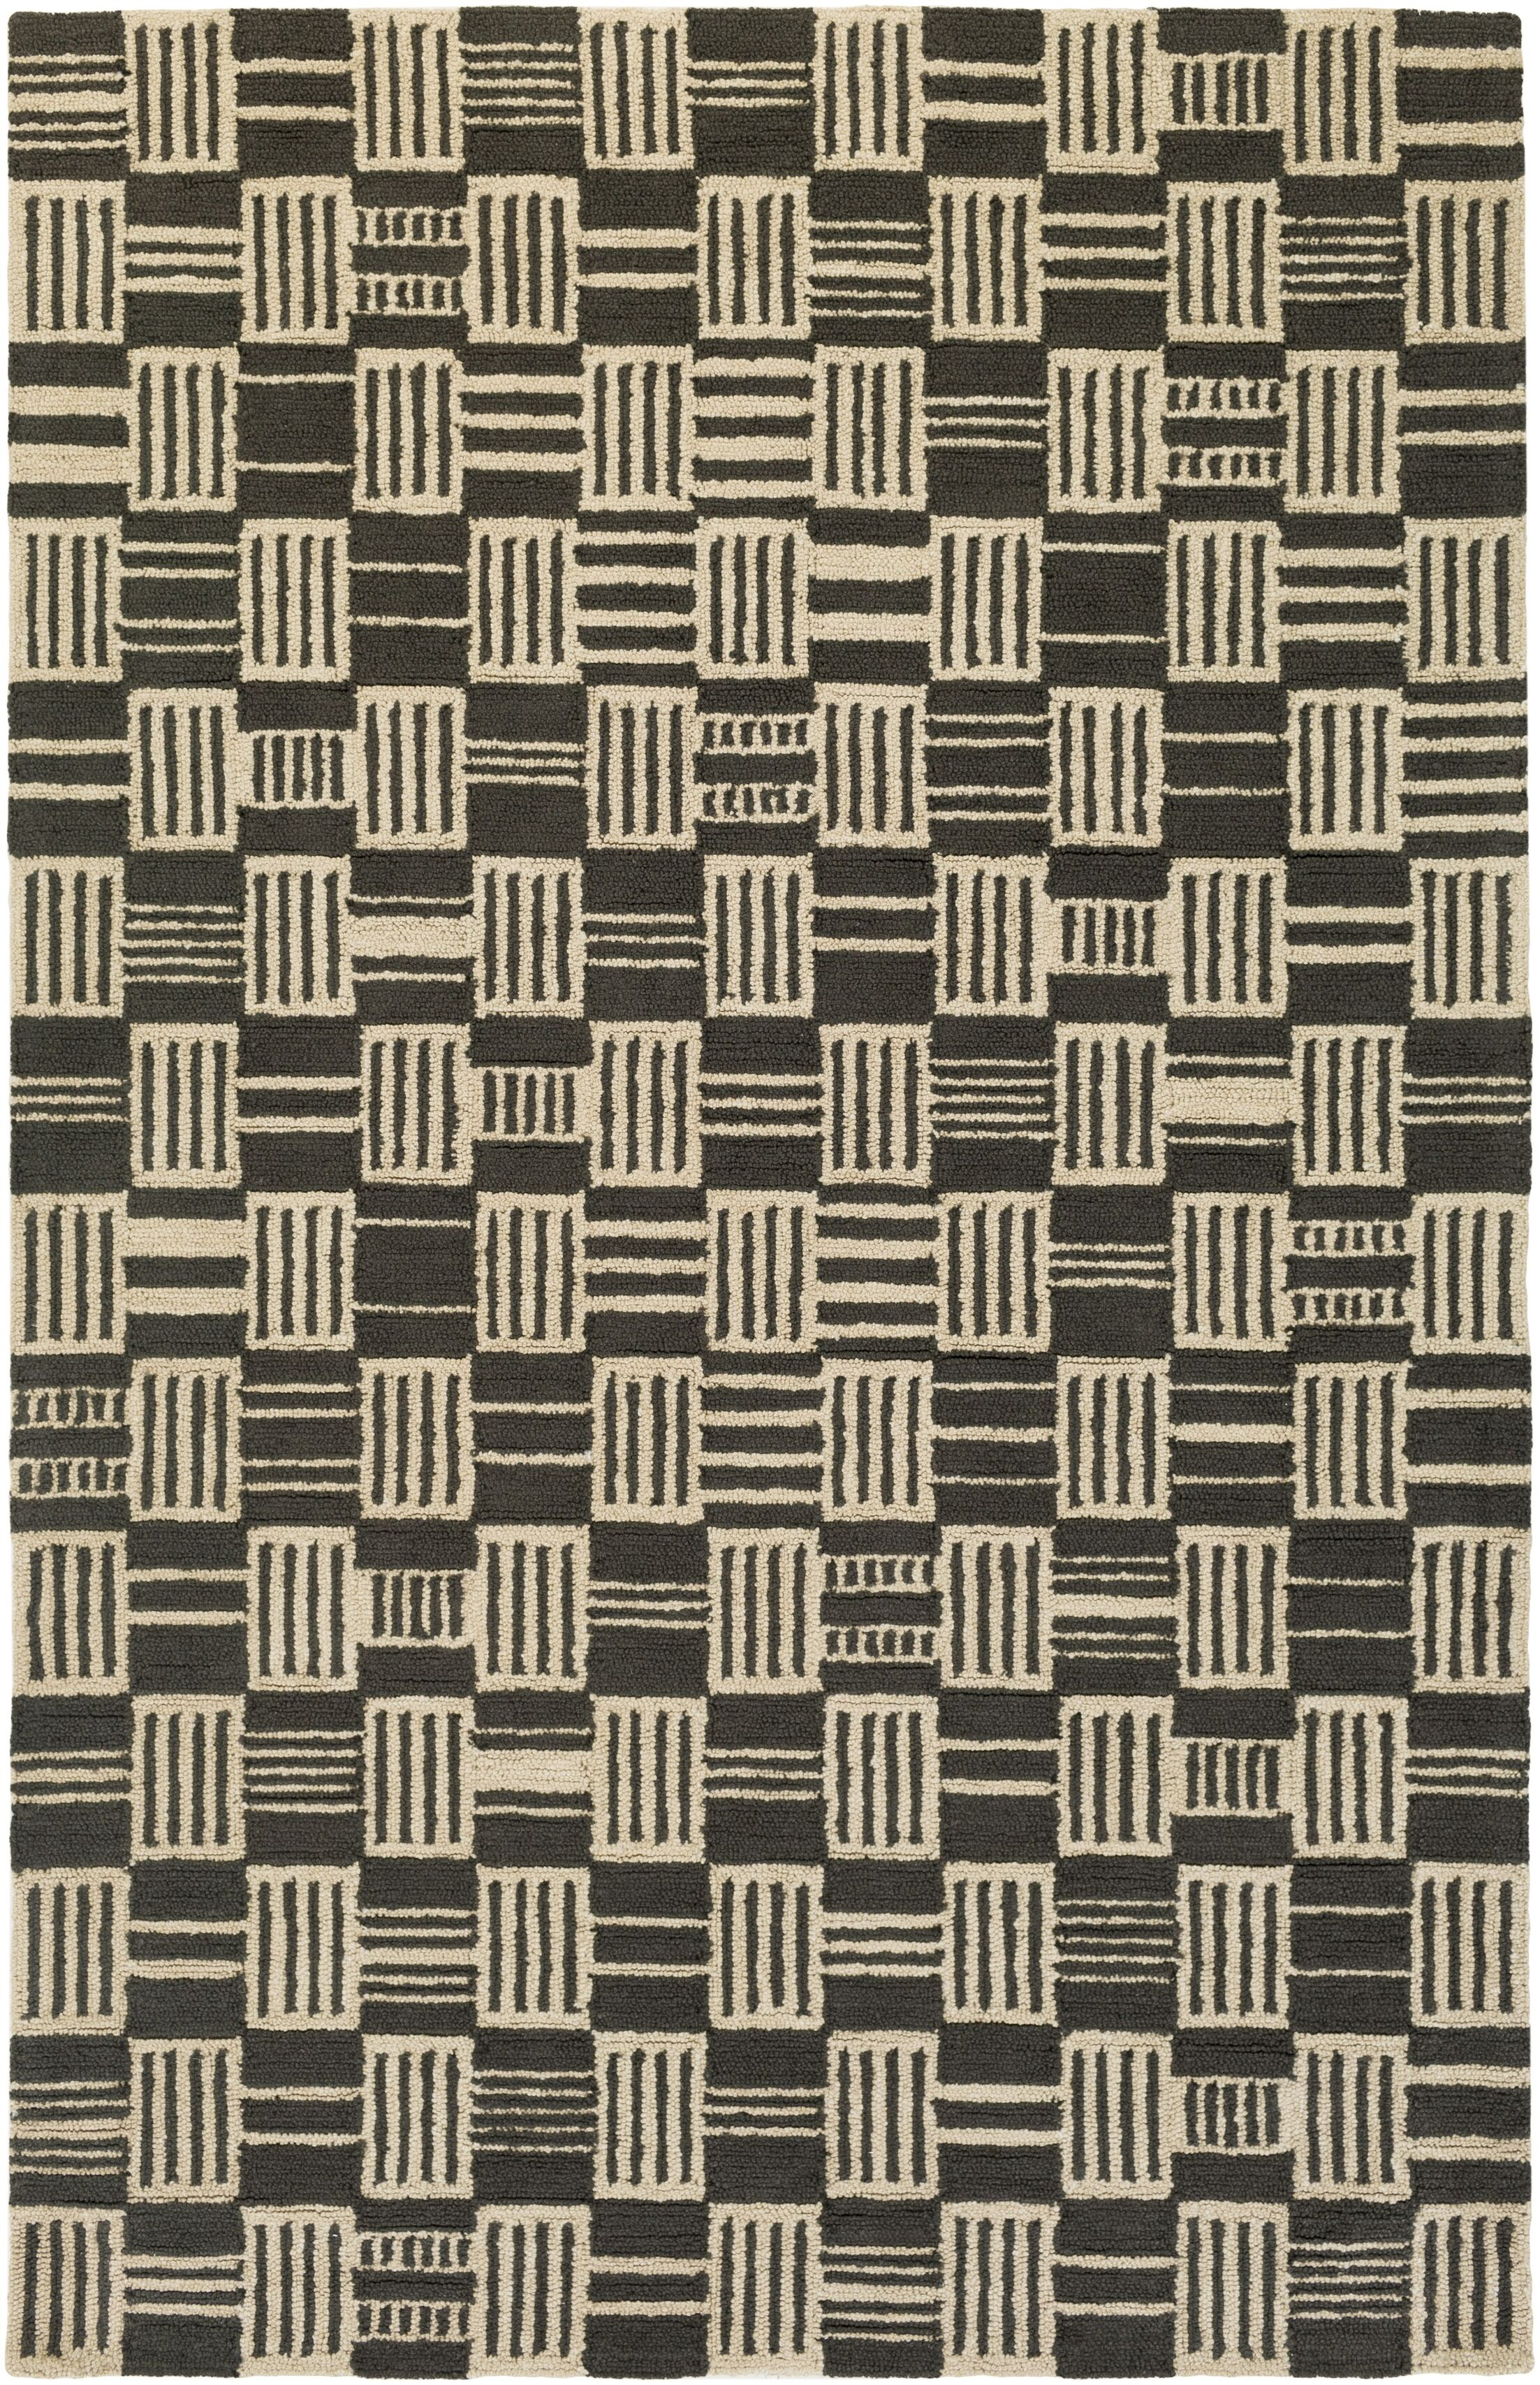 Judd Hand-Tufted Black/Beige Area Rug Rug Size: Rectangle 5' x 7'6